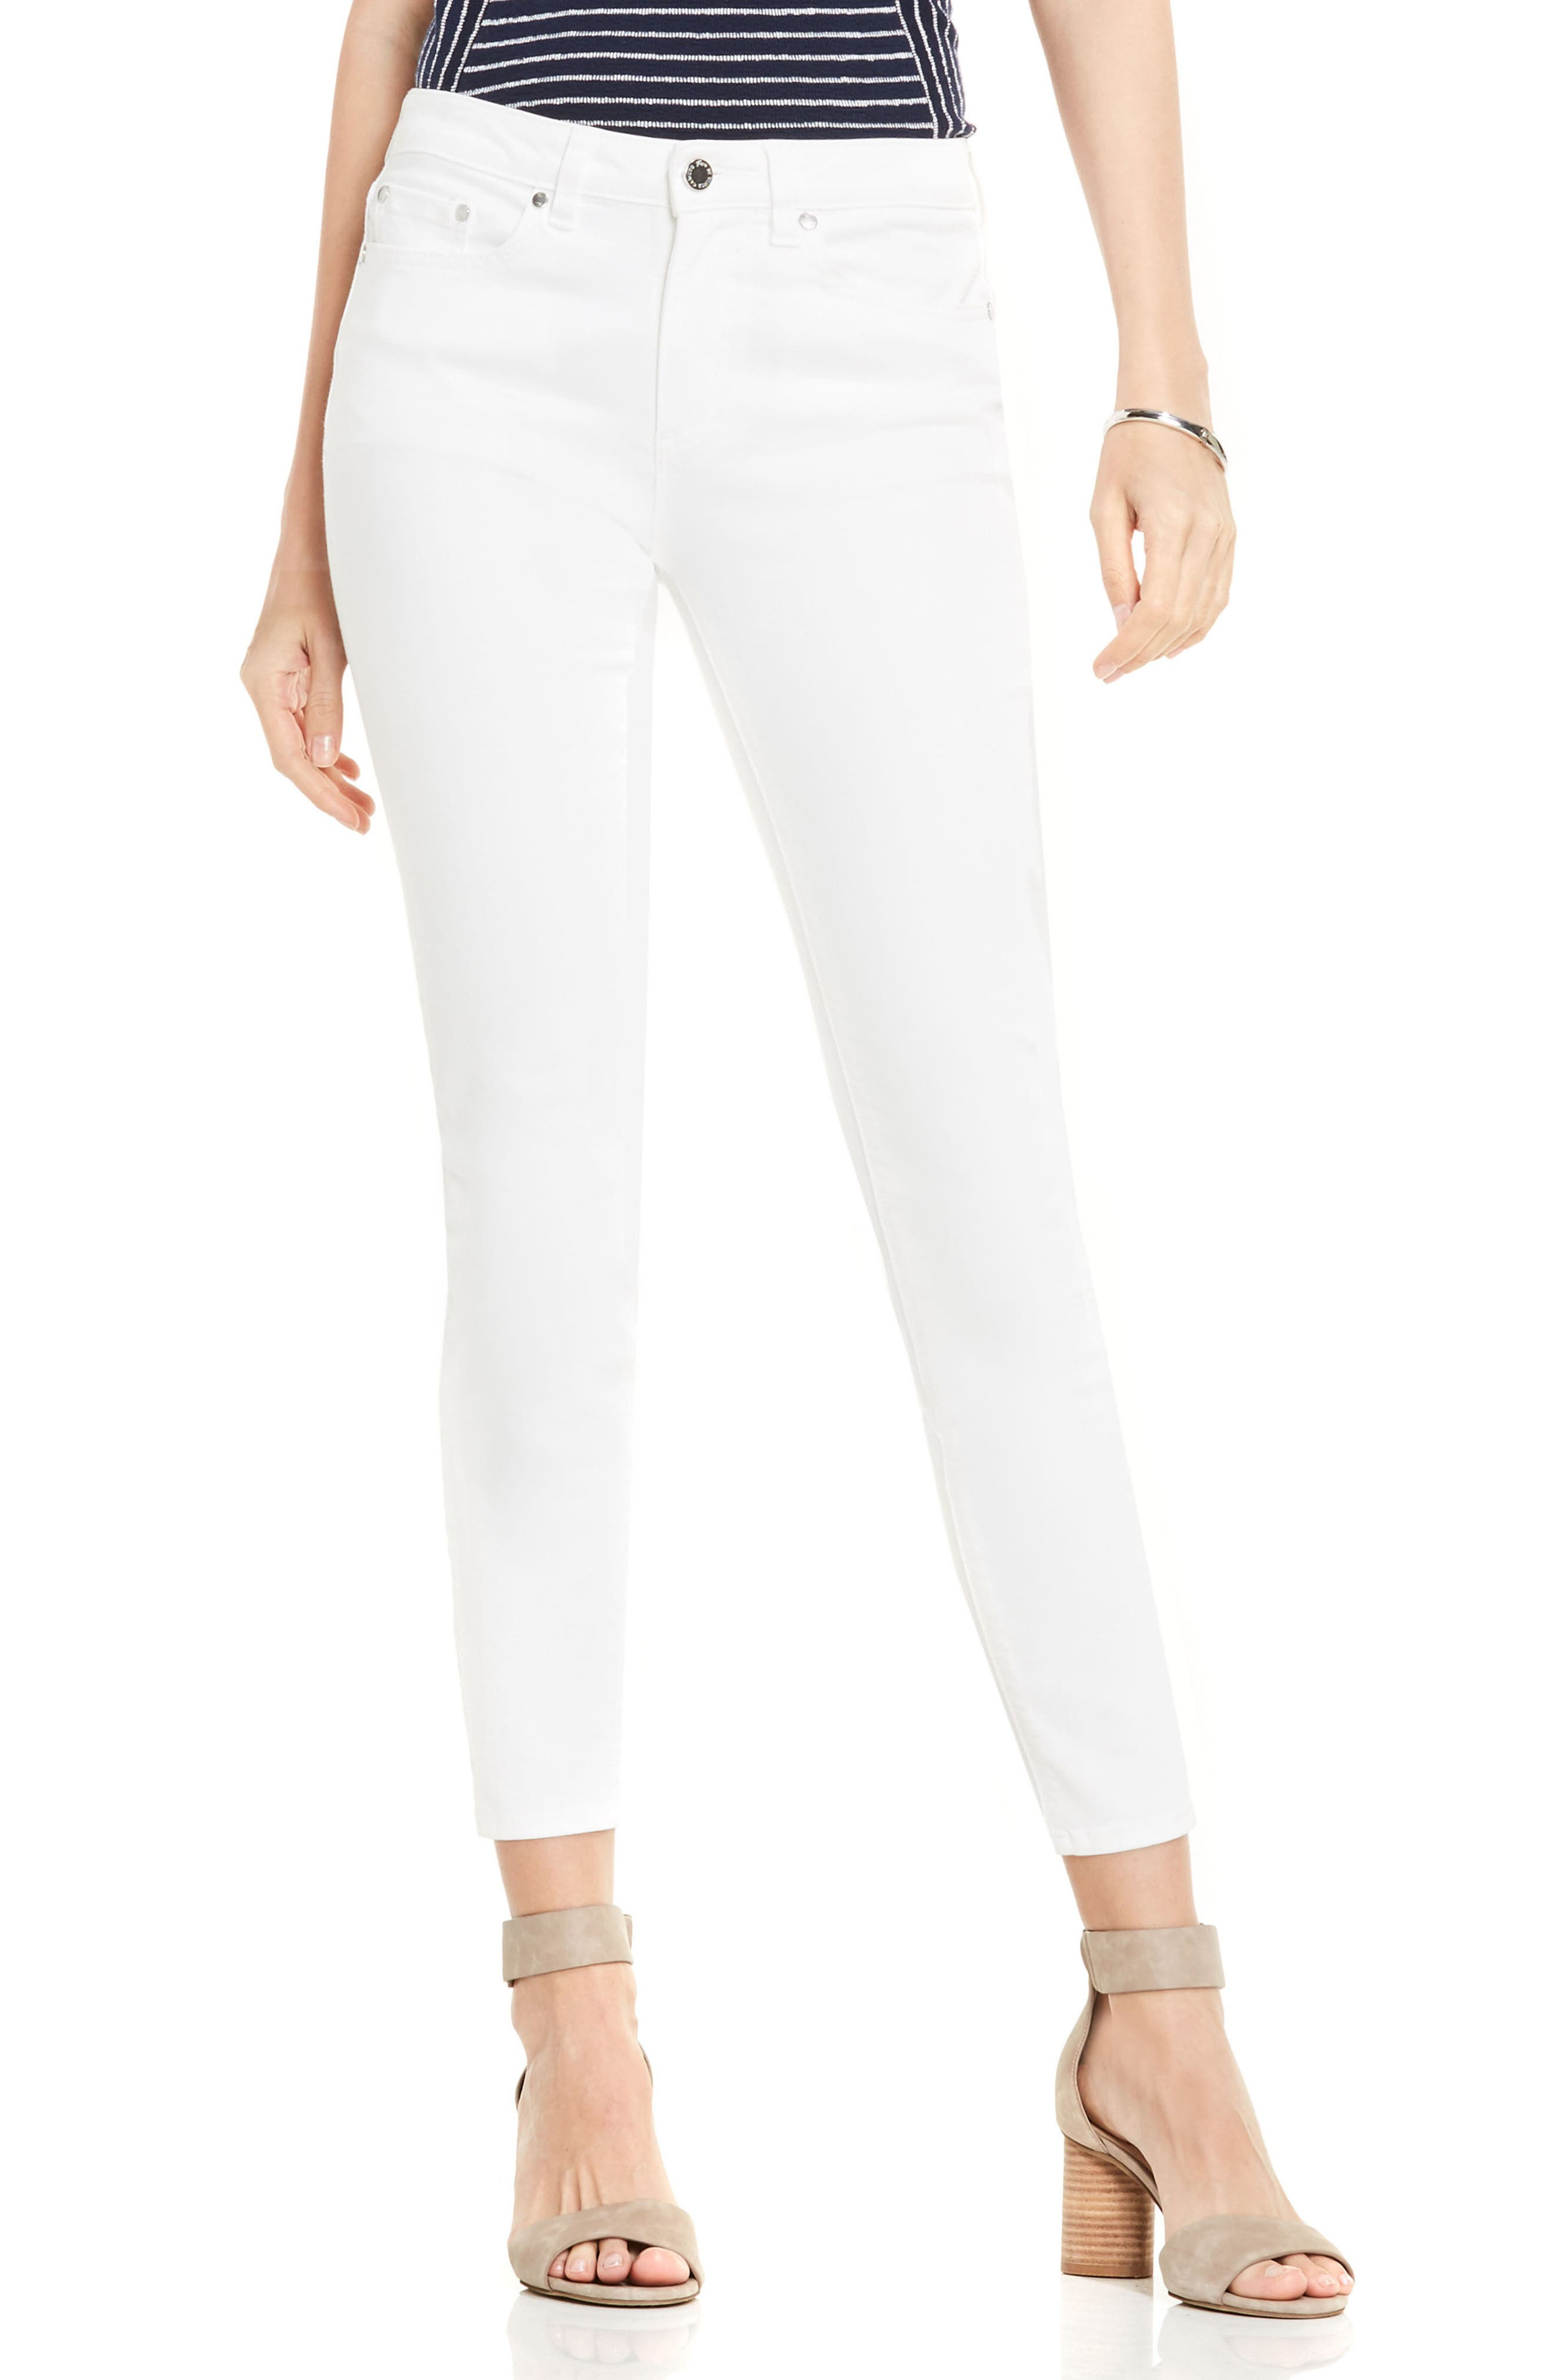 Alternate Image 1 Selected - Vince Camuto Skinny Jeans